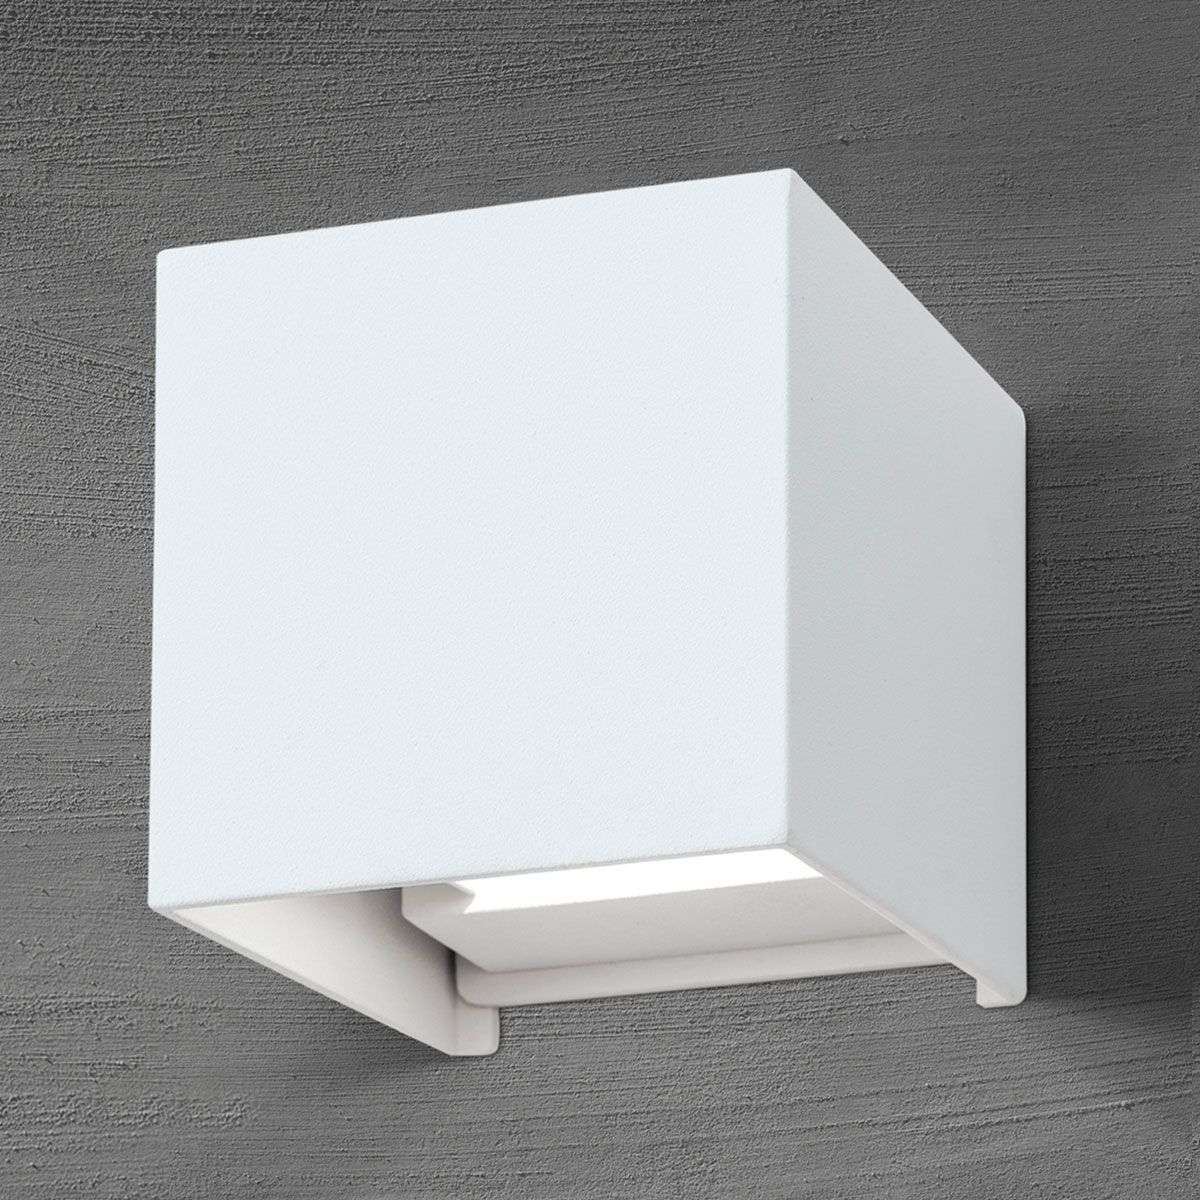 Cube shaped led outdoor wall light cube in white lights cube shaped led outdoor wall light cube in white 7255349 31 aloadofball Choice Image